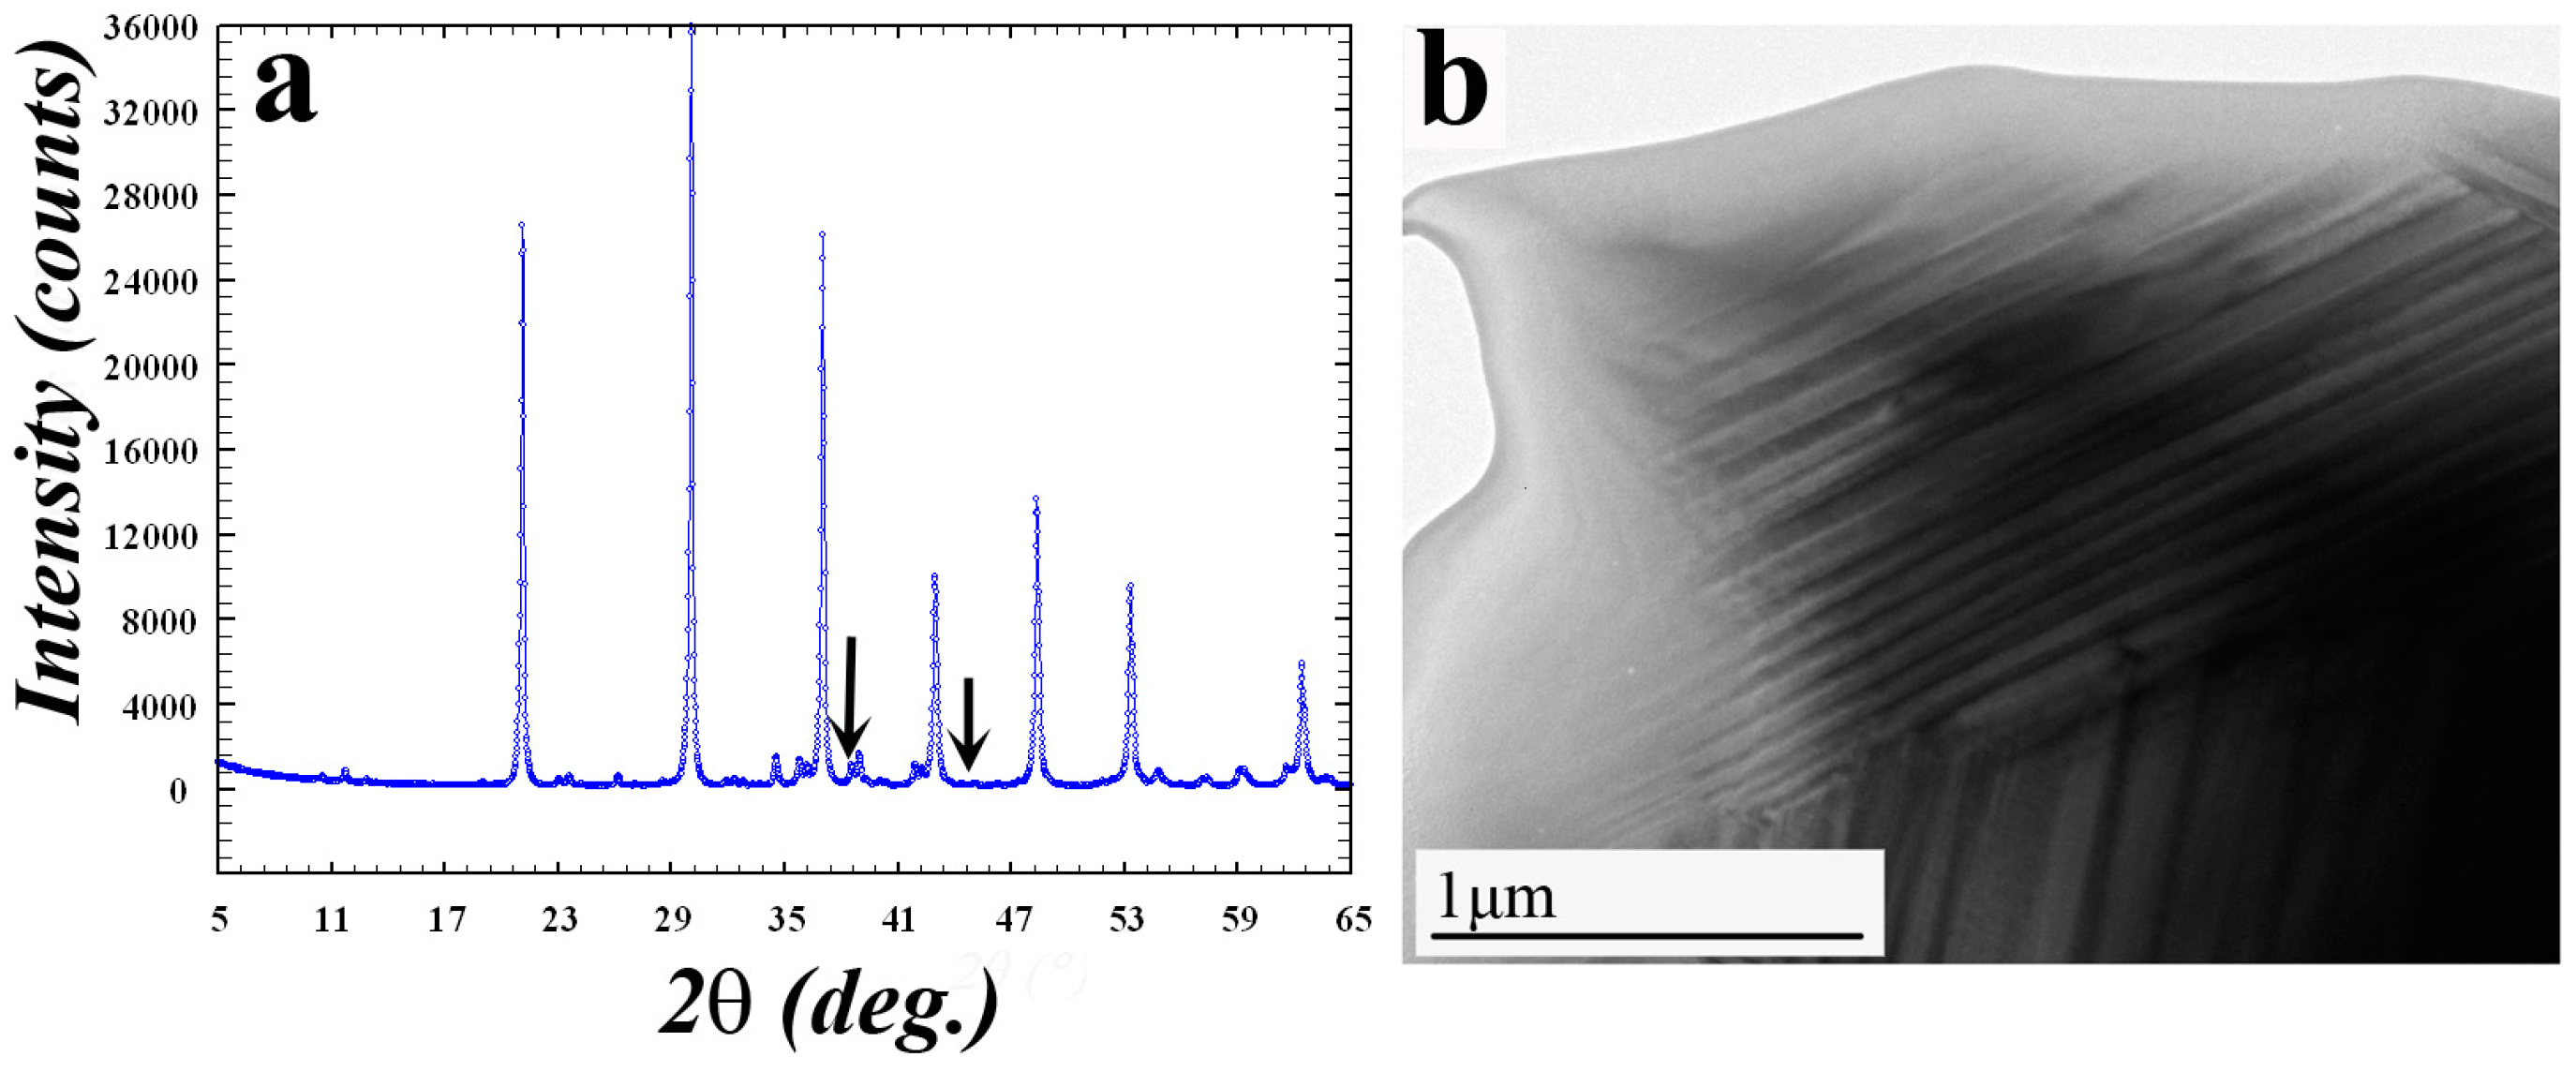 studying the diffraction patterns from Chtys and clay minerals, vol 49, no 5 398 409, 2001 baseline studies of the clay minerals society source clays: powder x-ray diffraction analyses.